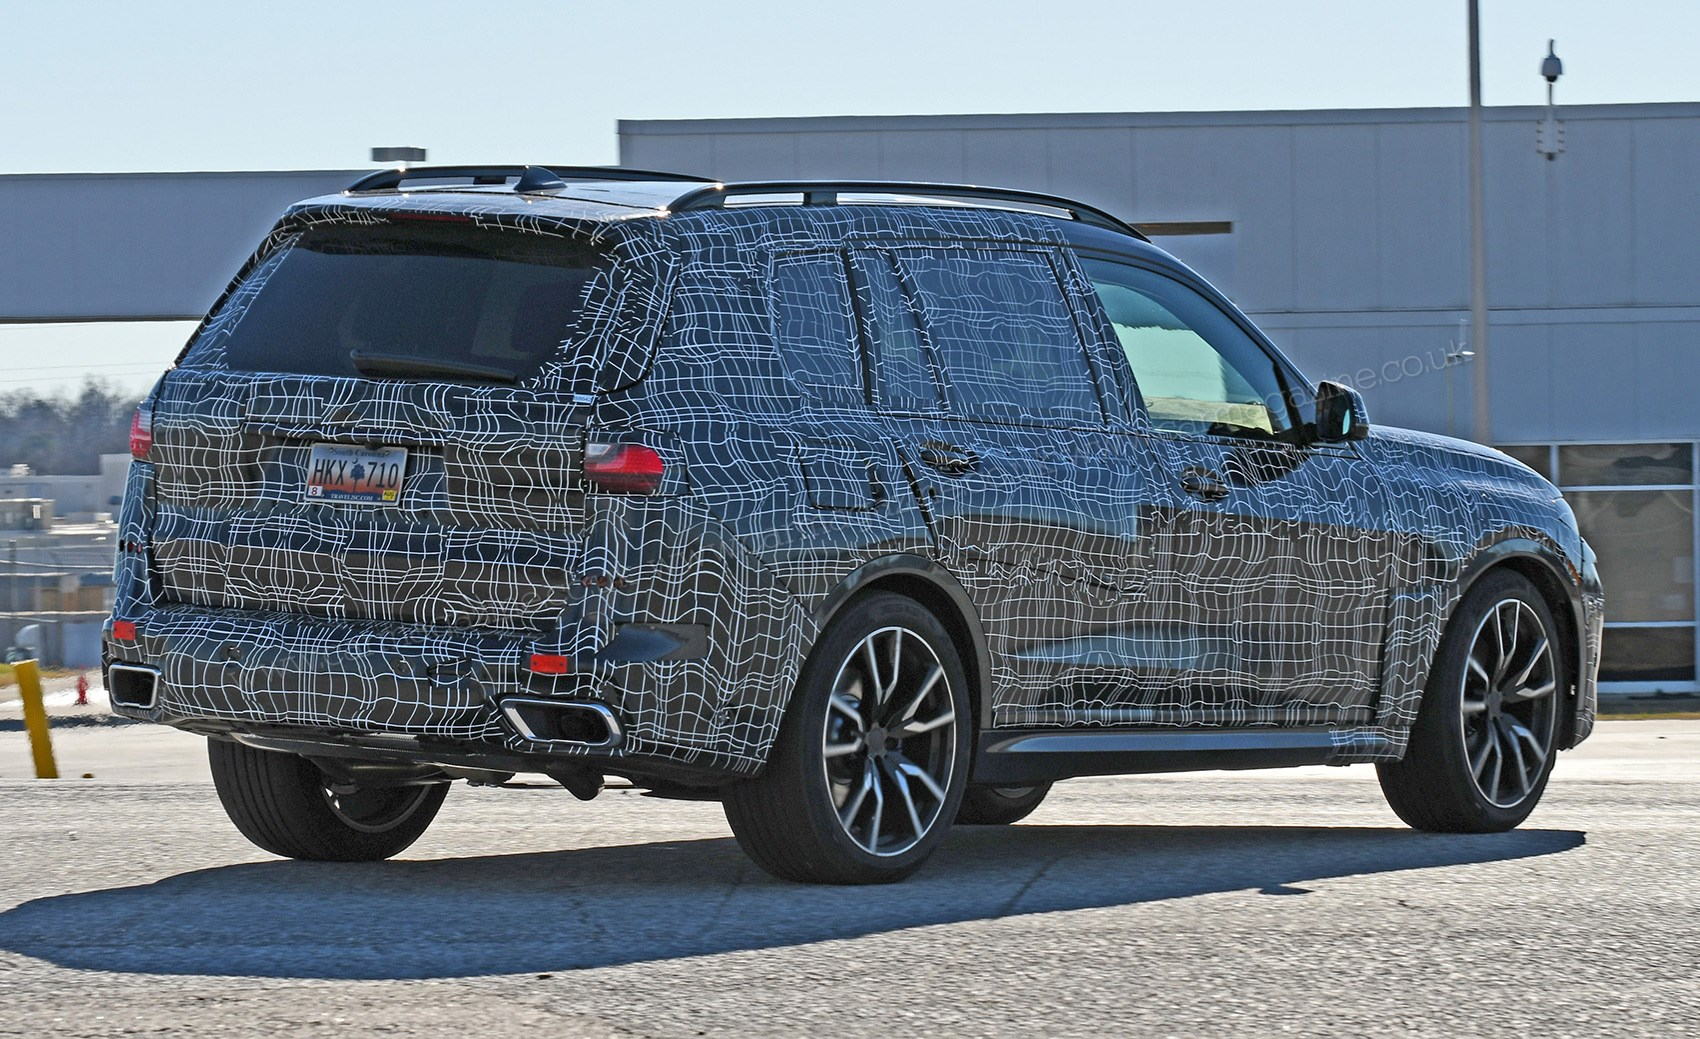 Coming Spied On Test Near The Bmw Spartanburg Factory In Us New X7 Out